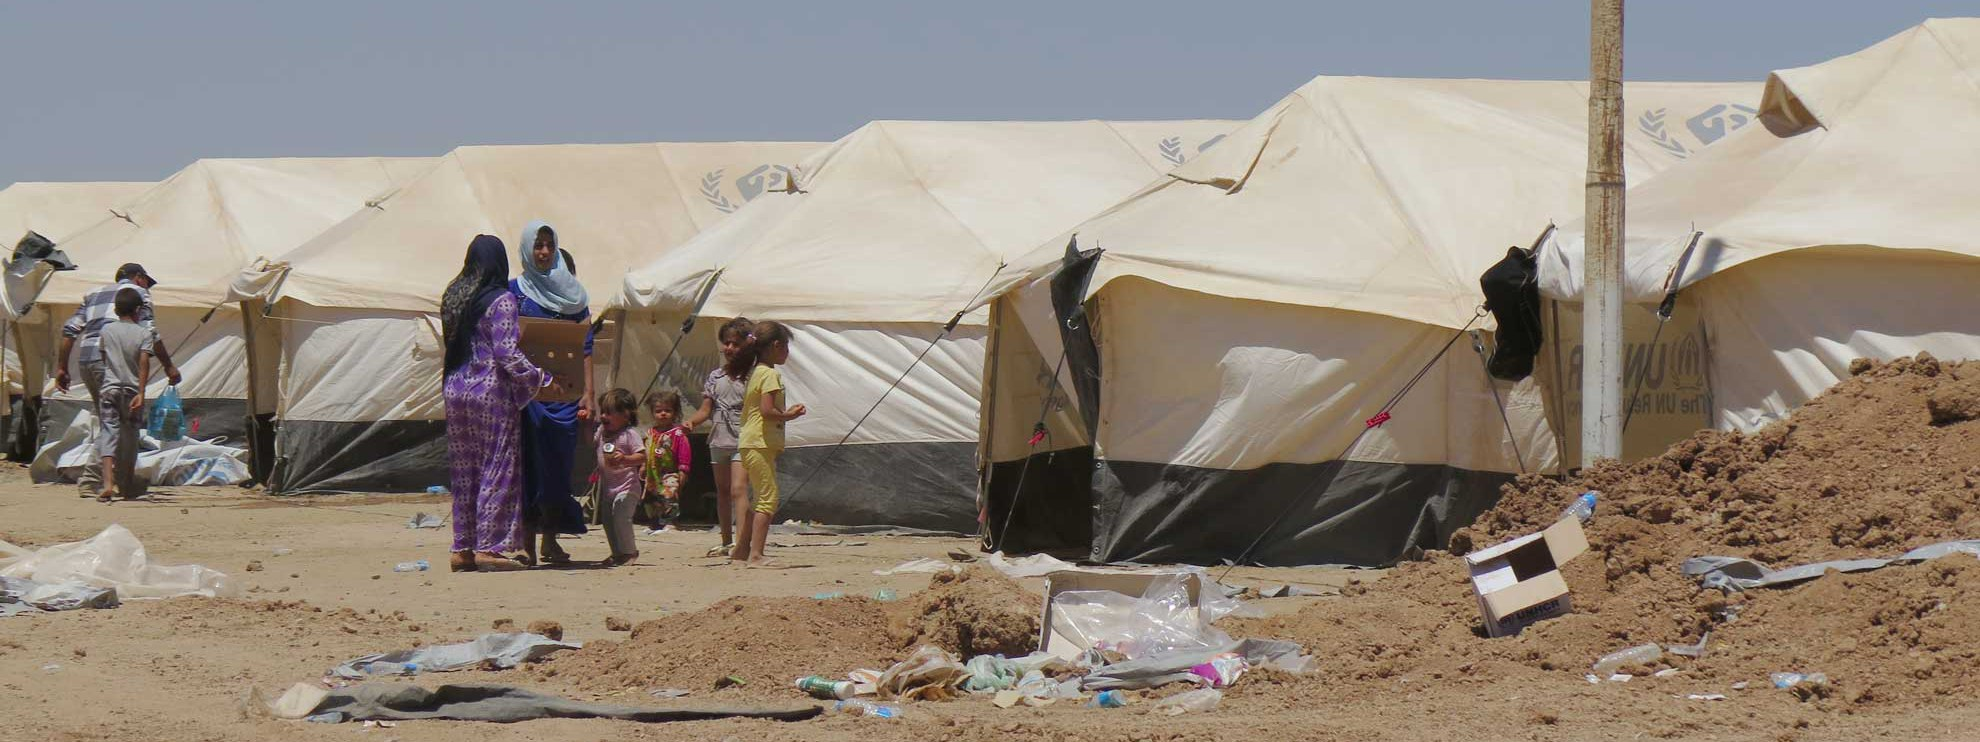 Camp de refugiés à Kalak, Irak. © Amnesty International